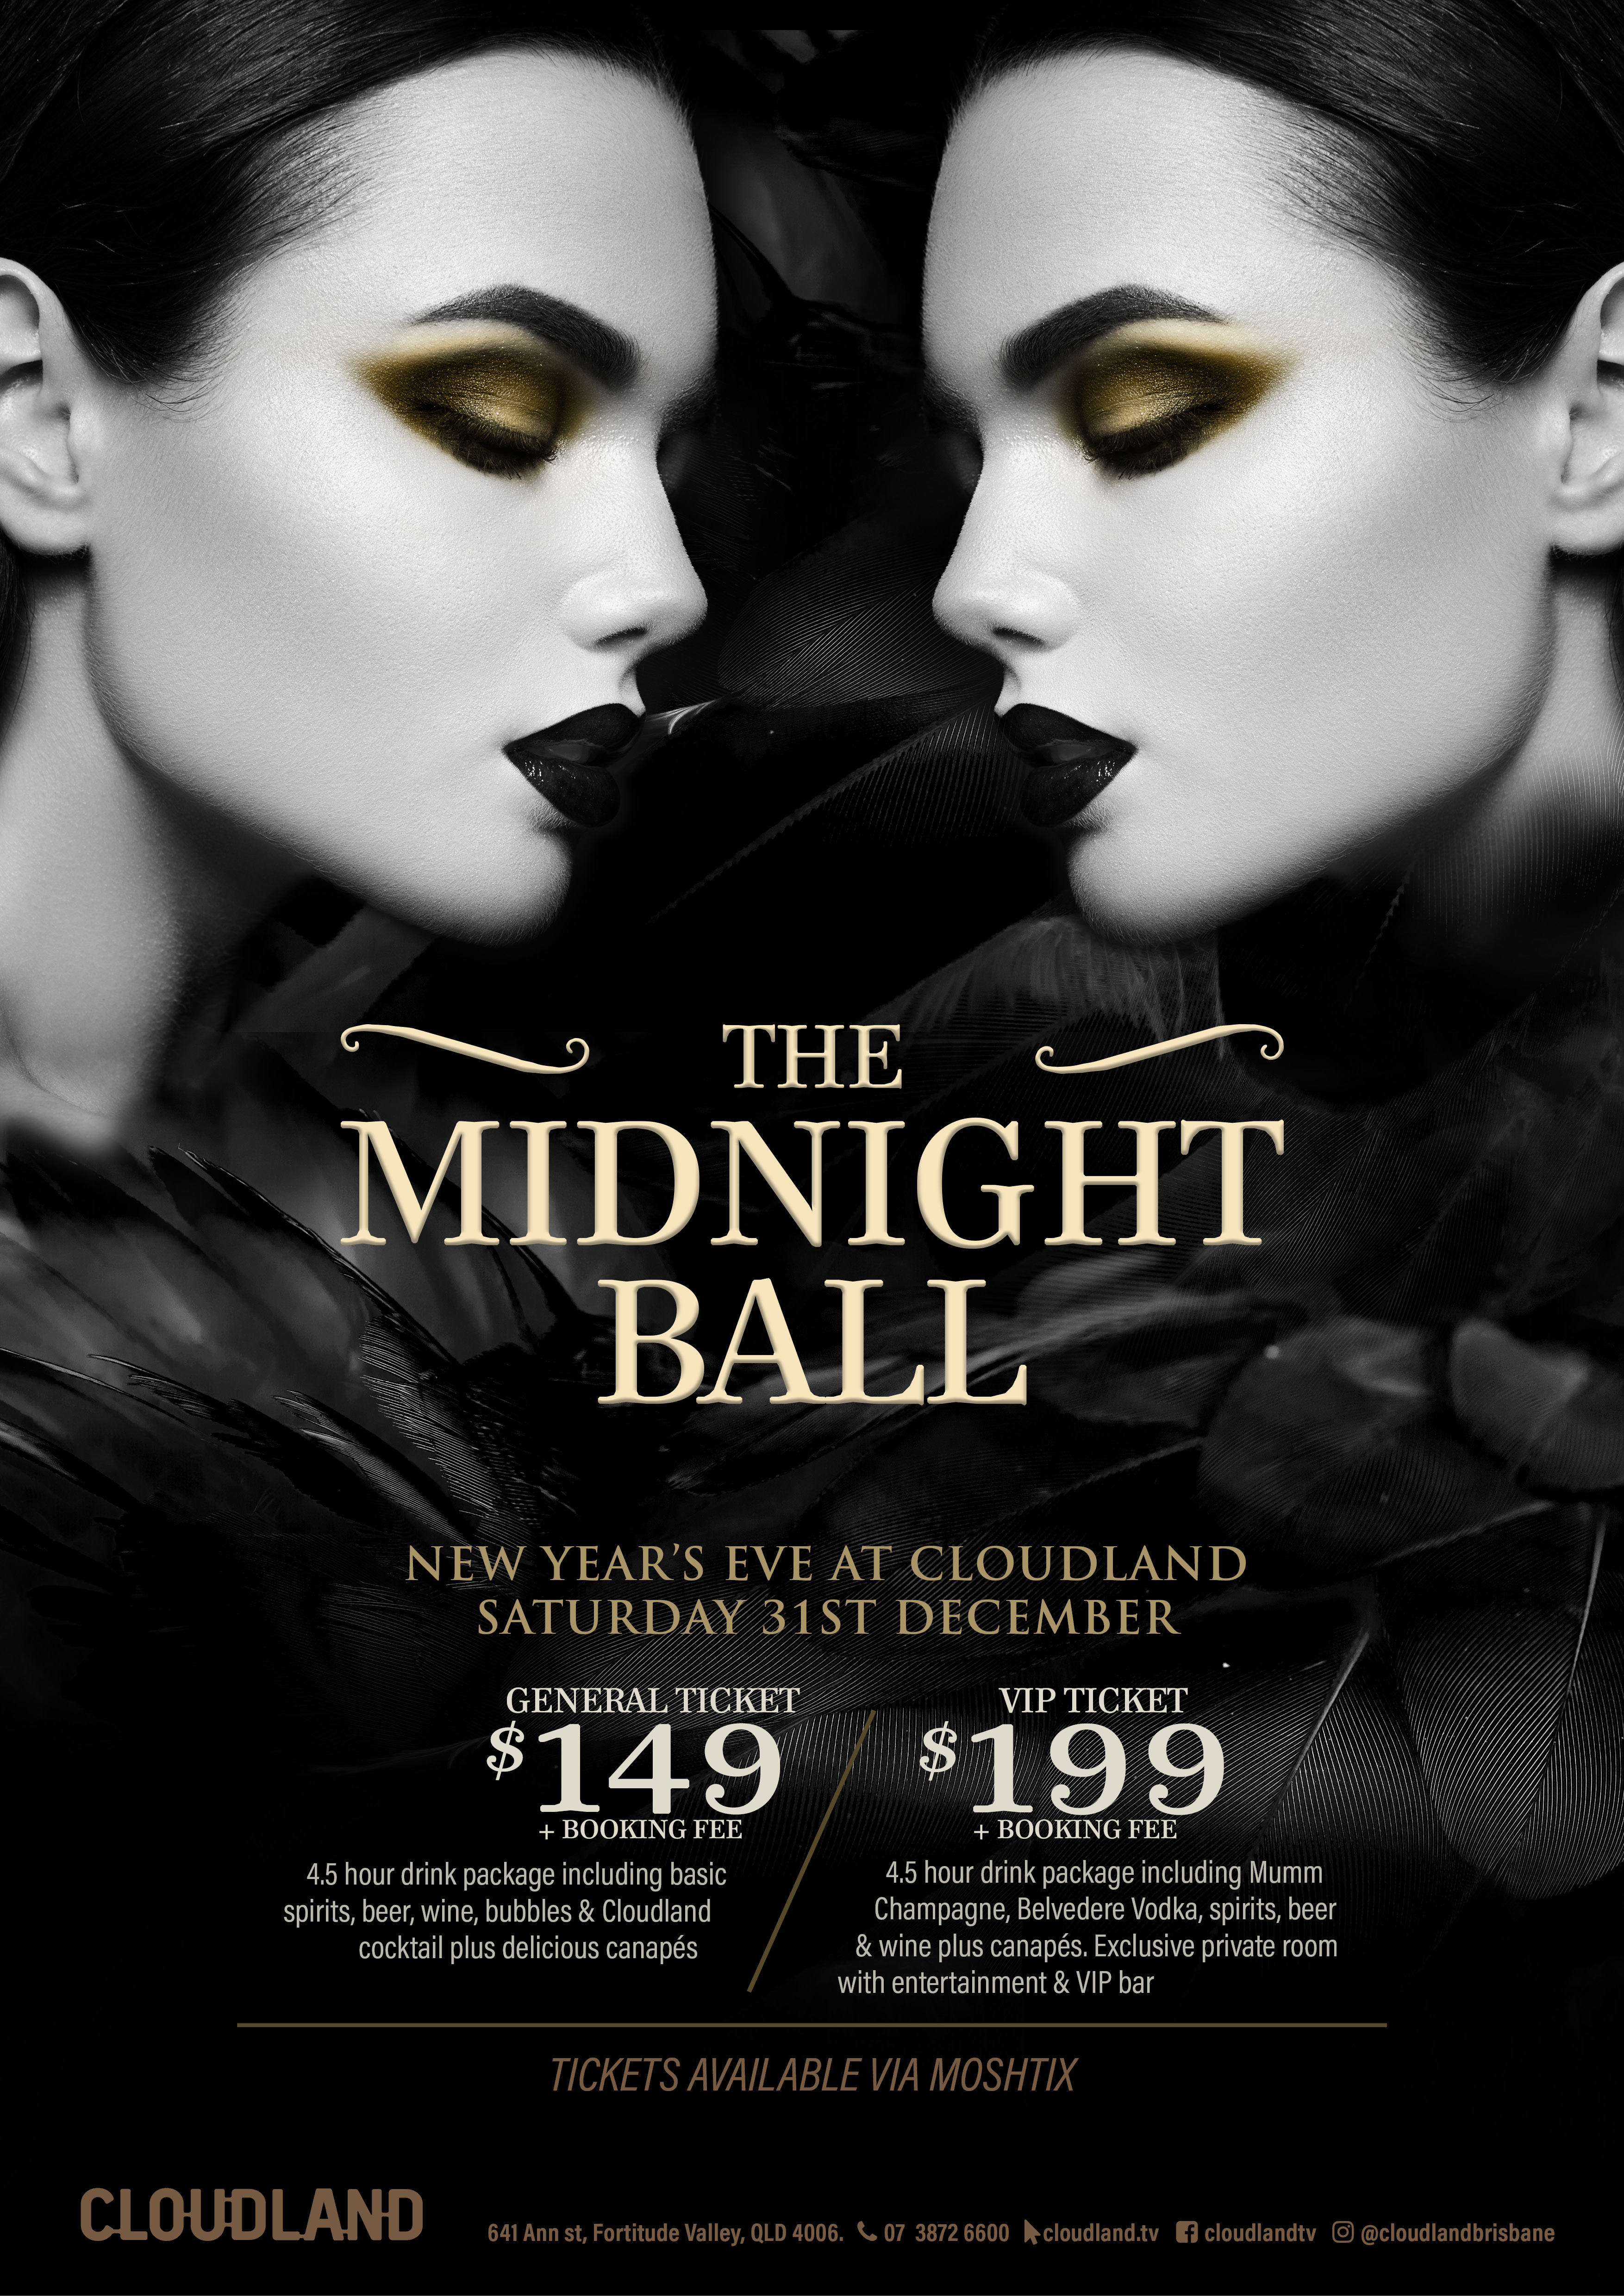 The Midnight Ball [New Year's Eve at Cloudland]